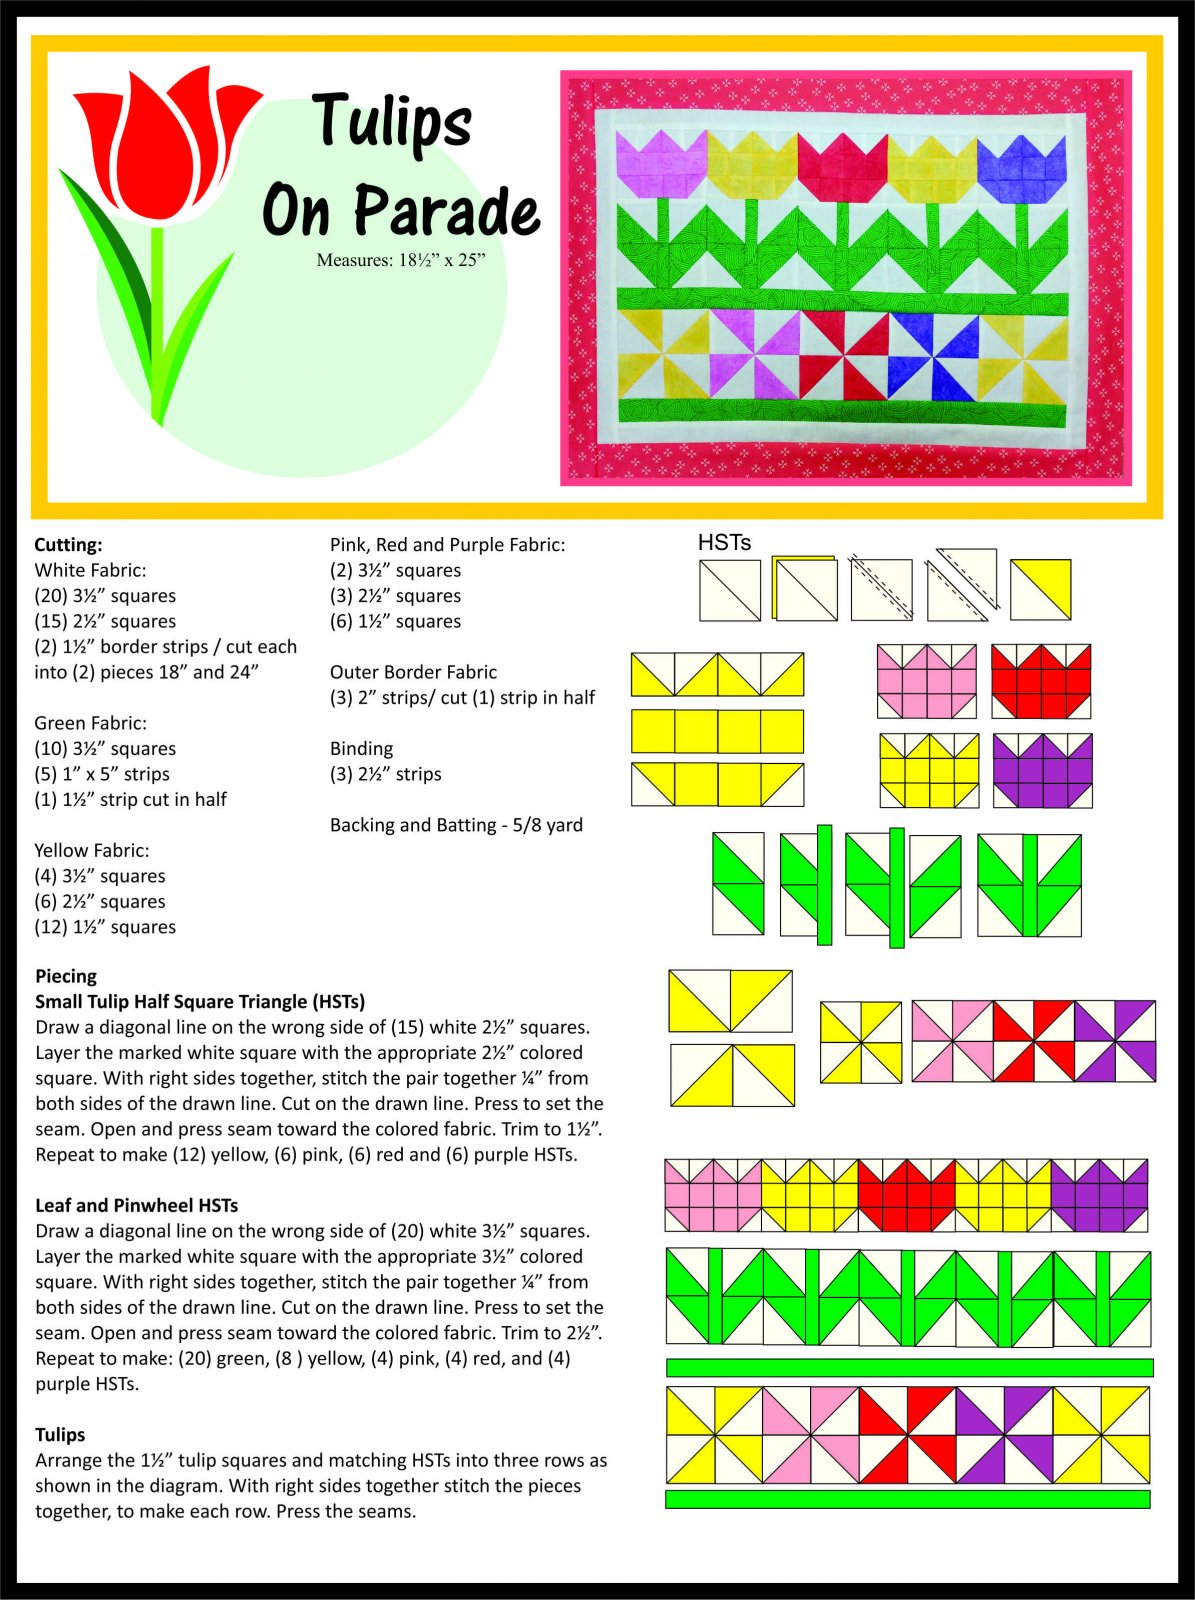 Tulips on Parade Pattern